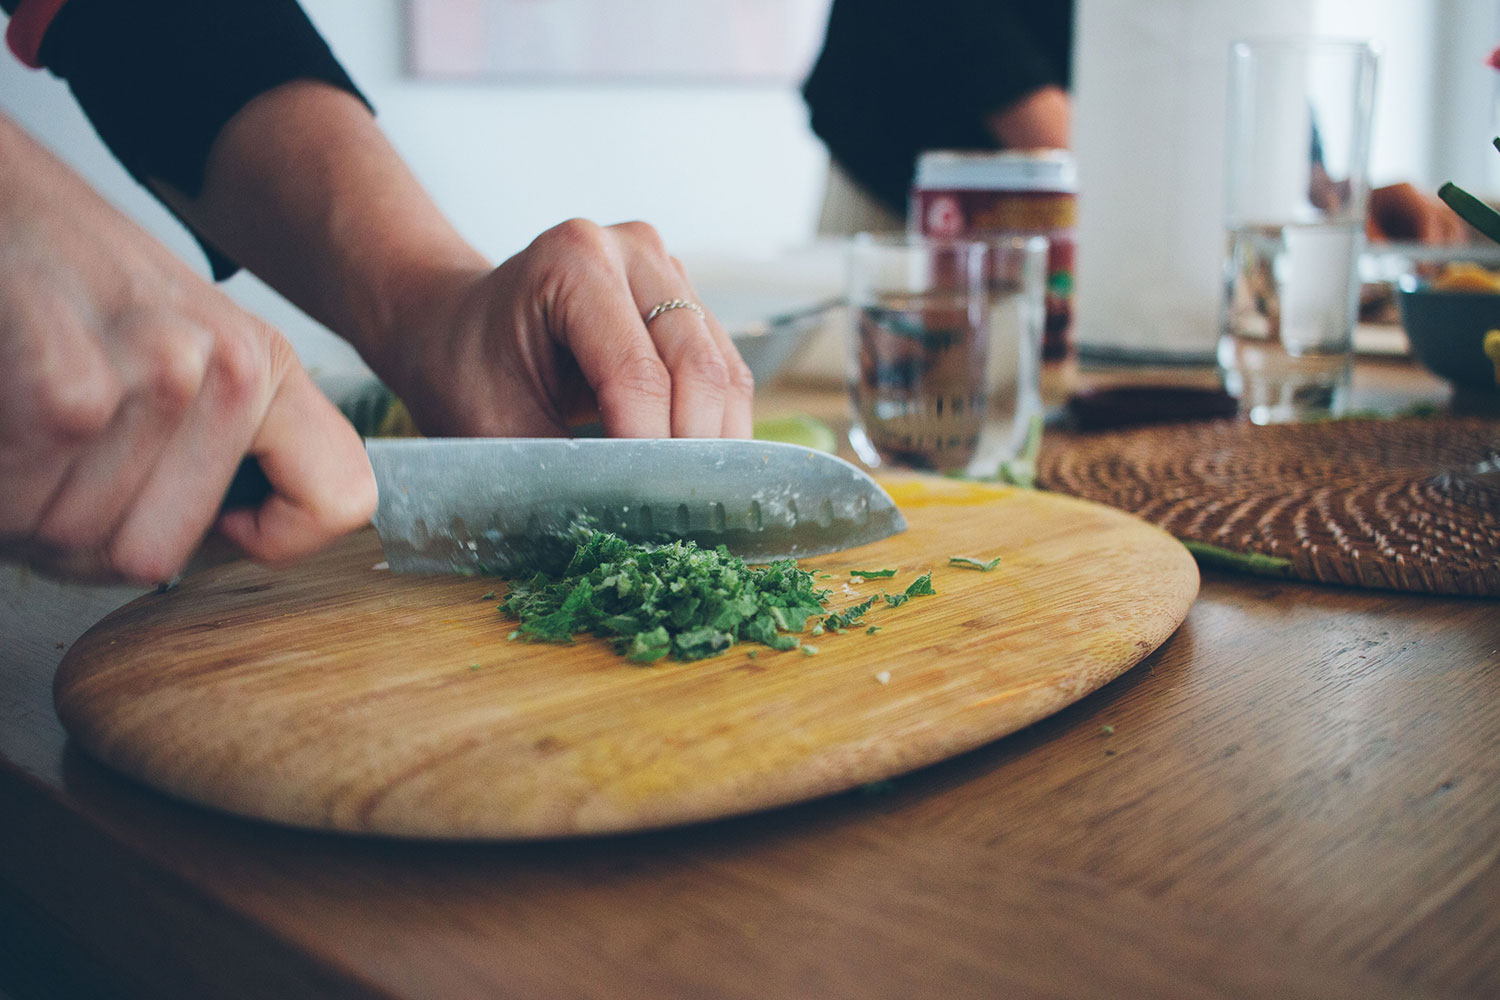 cooking-class-photographer-chicago-nomad-and-camera-1.jpg